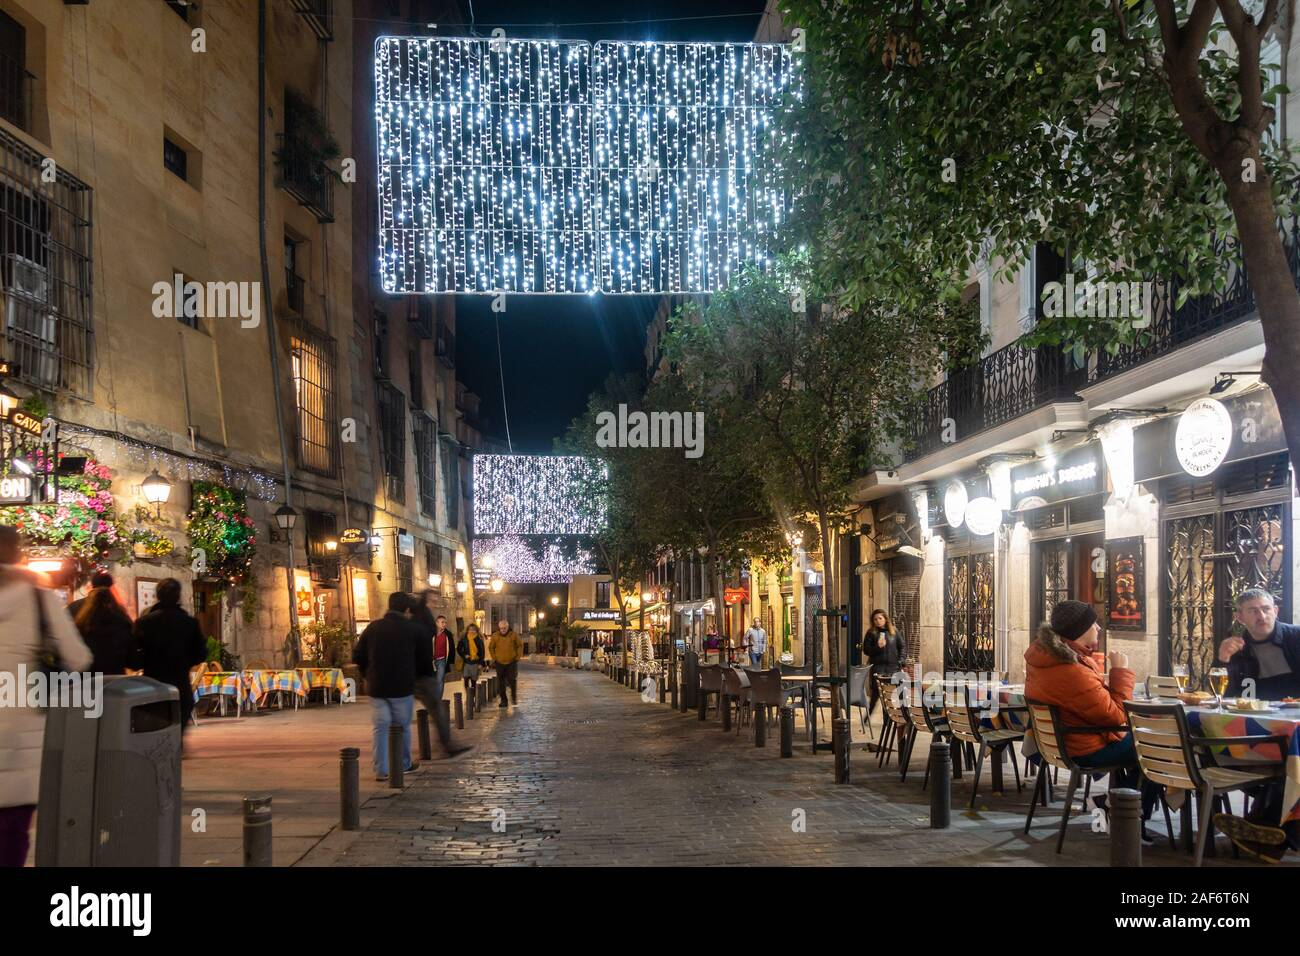 people-sat-outside-at-tables-in-cava-de-san-miguel-in-madrid-spain-it-is-december-close-to-christmas-and-decorations-adorn-the-streets-2AF6T6N.jpg